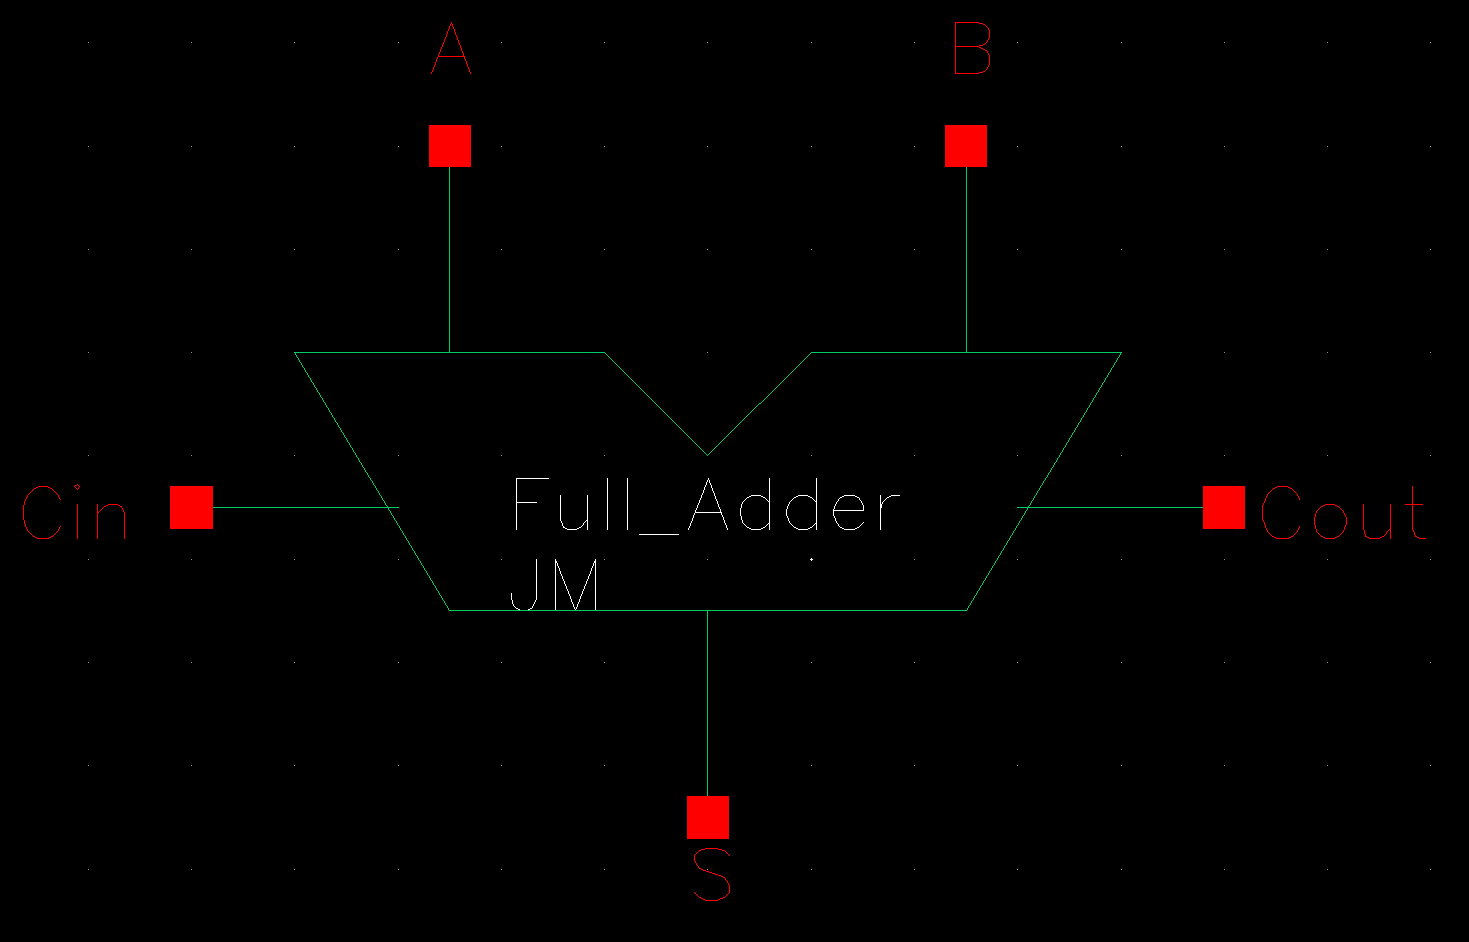 Lab Here Is A Block Diagram Of 1bit Full Adder Http Jbaker Courses Ee421l F16